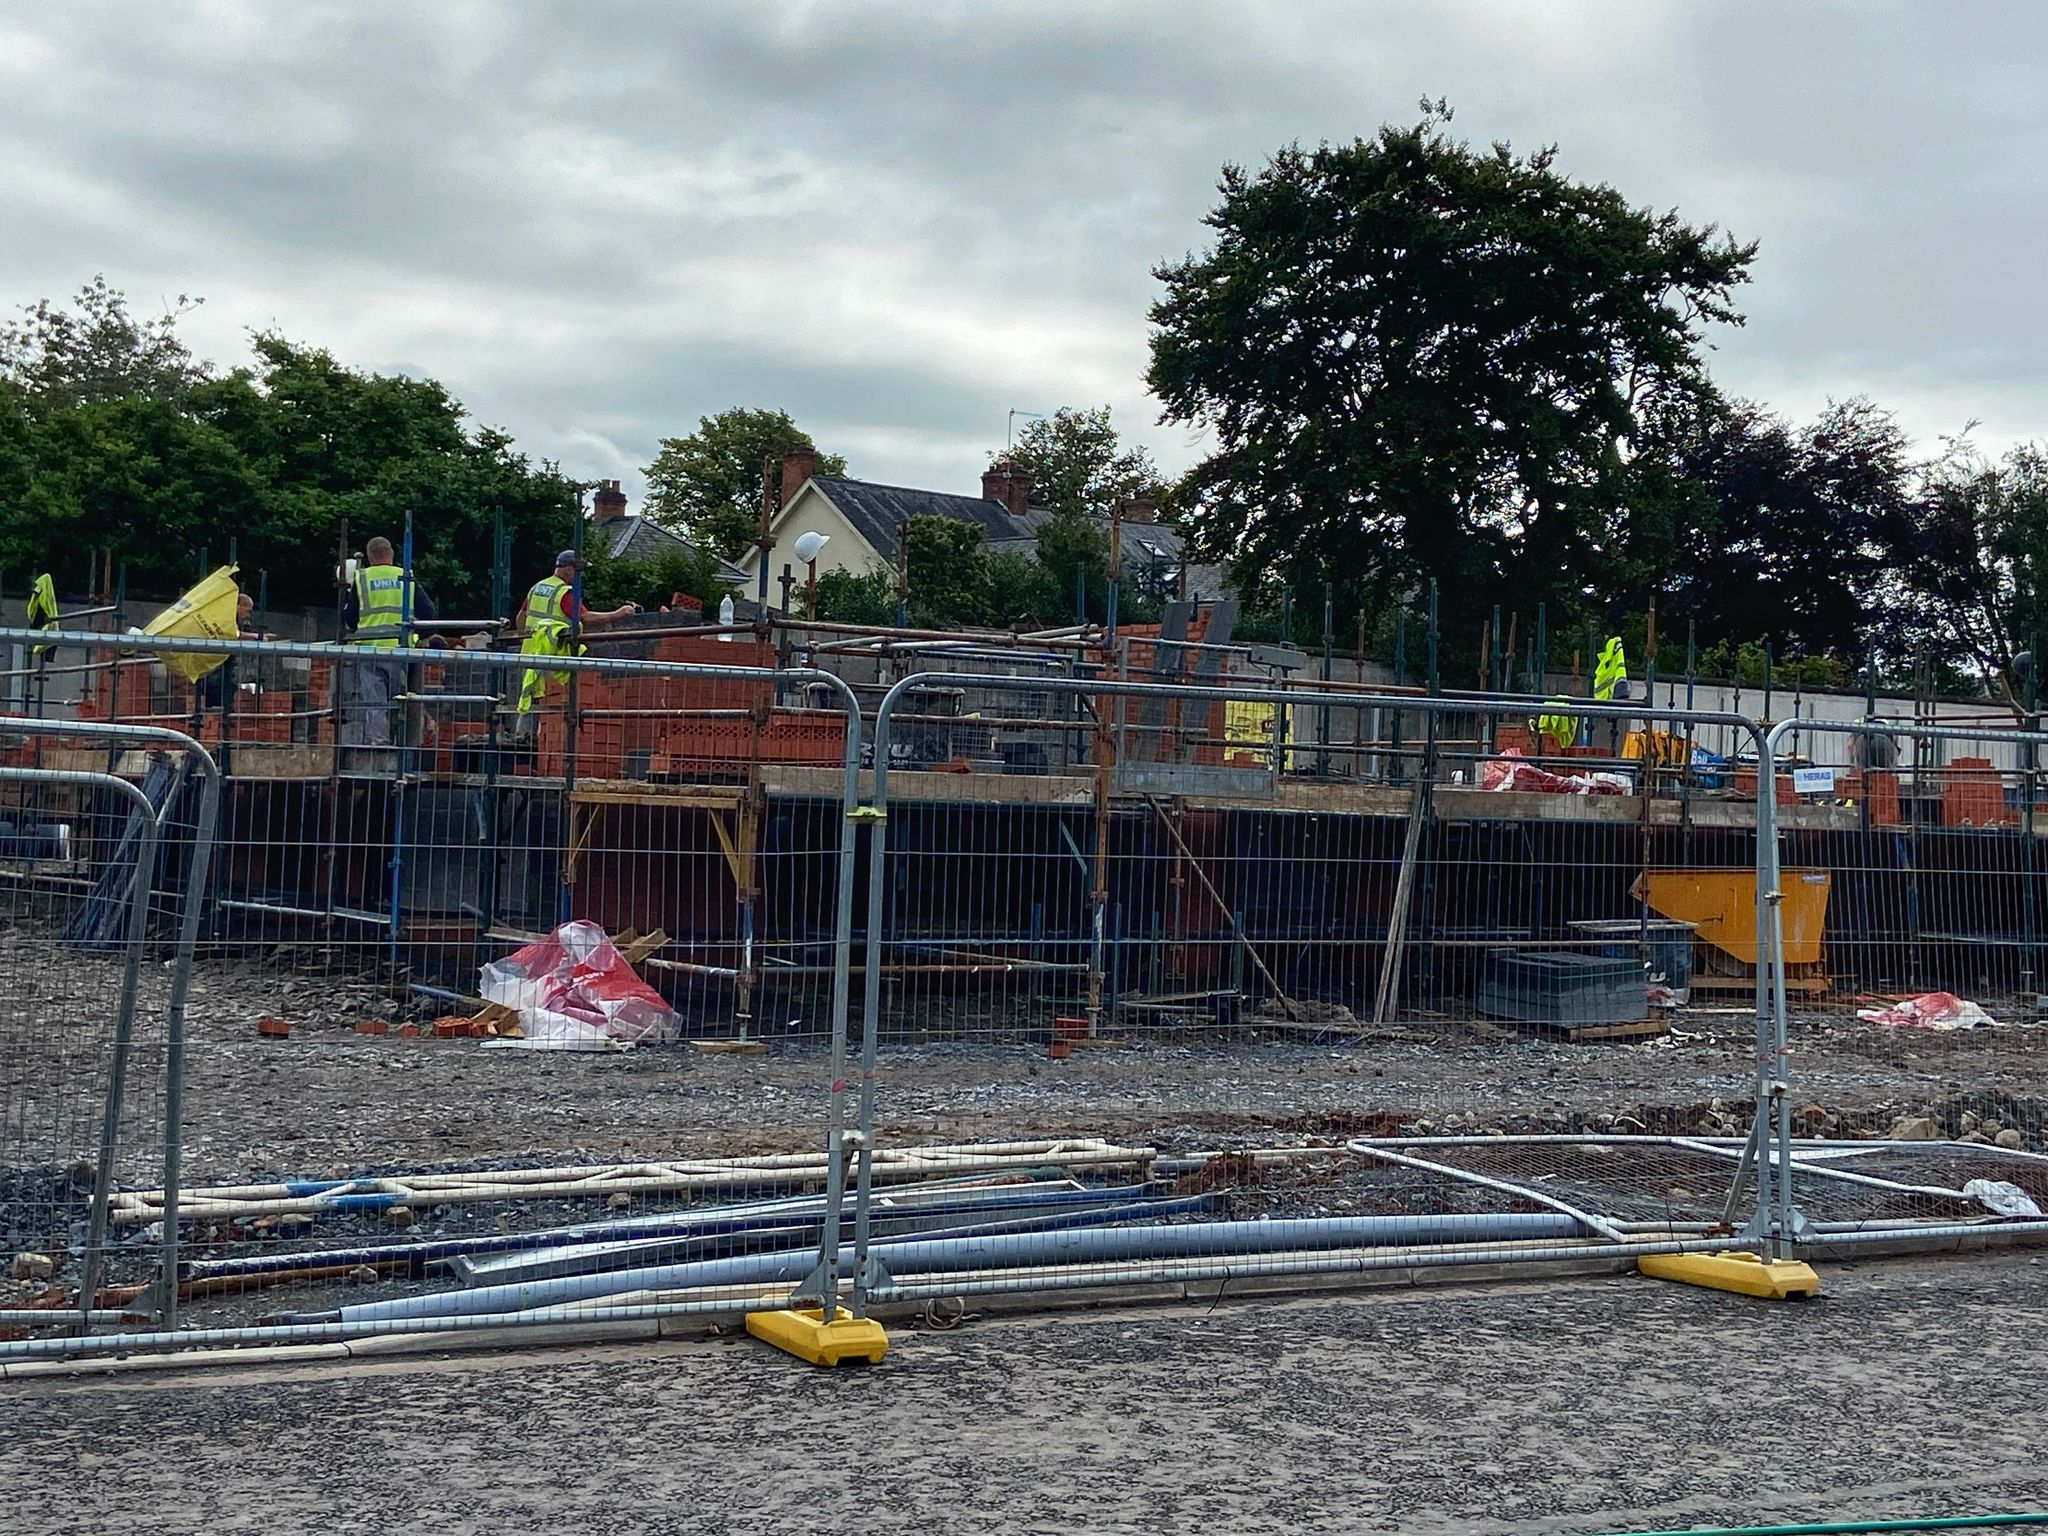 WORK ONGOING: Phase one of the 16 apartments is expected to be complete by March 2022.